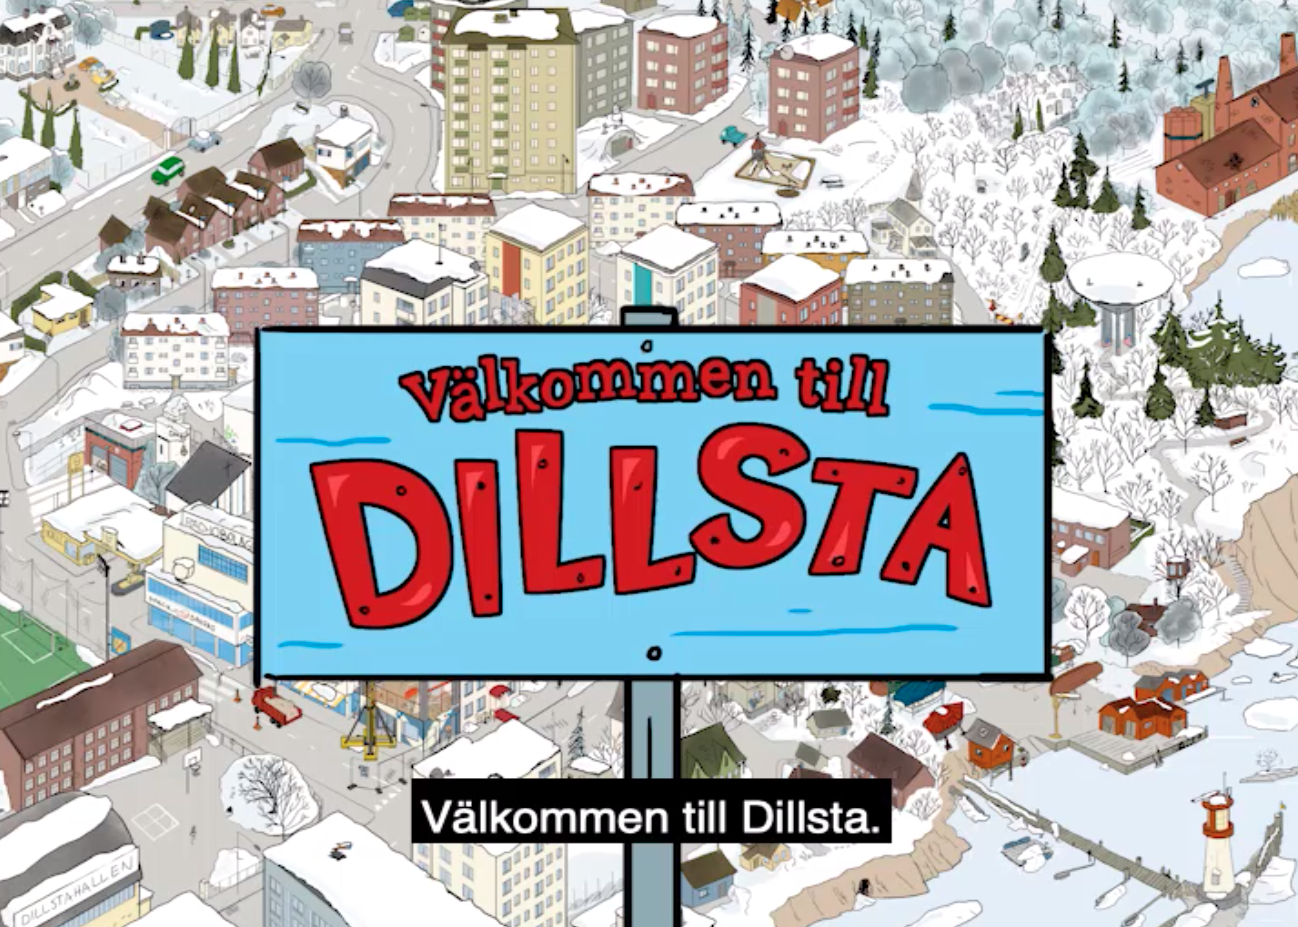 Dillstaligan